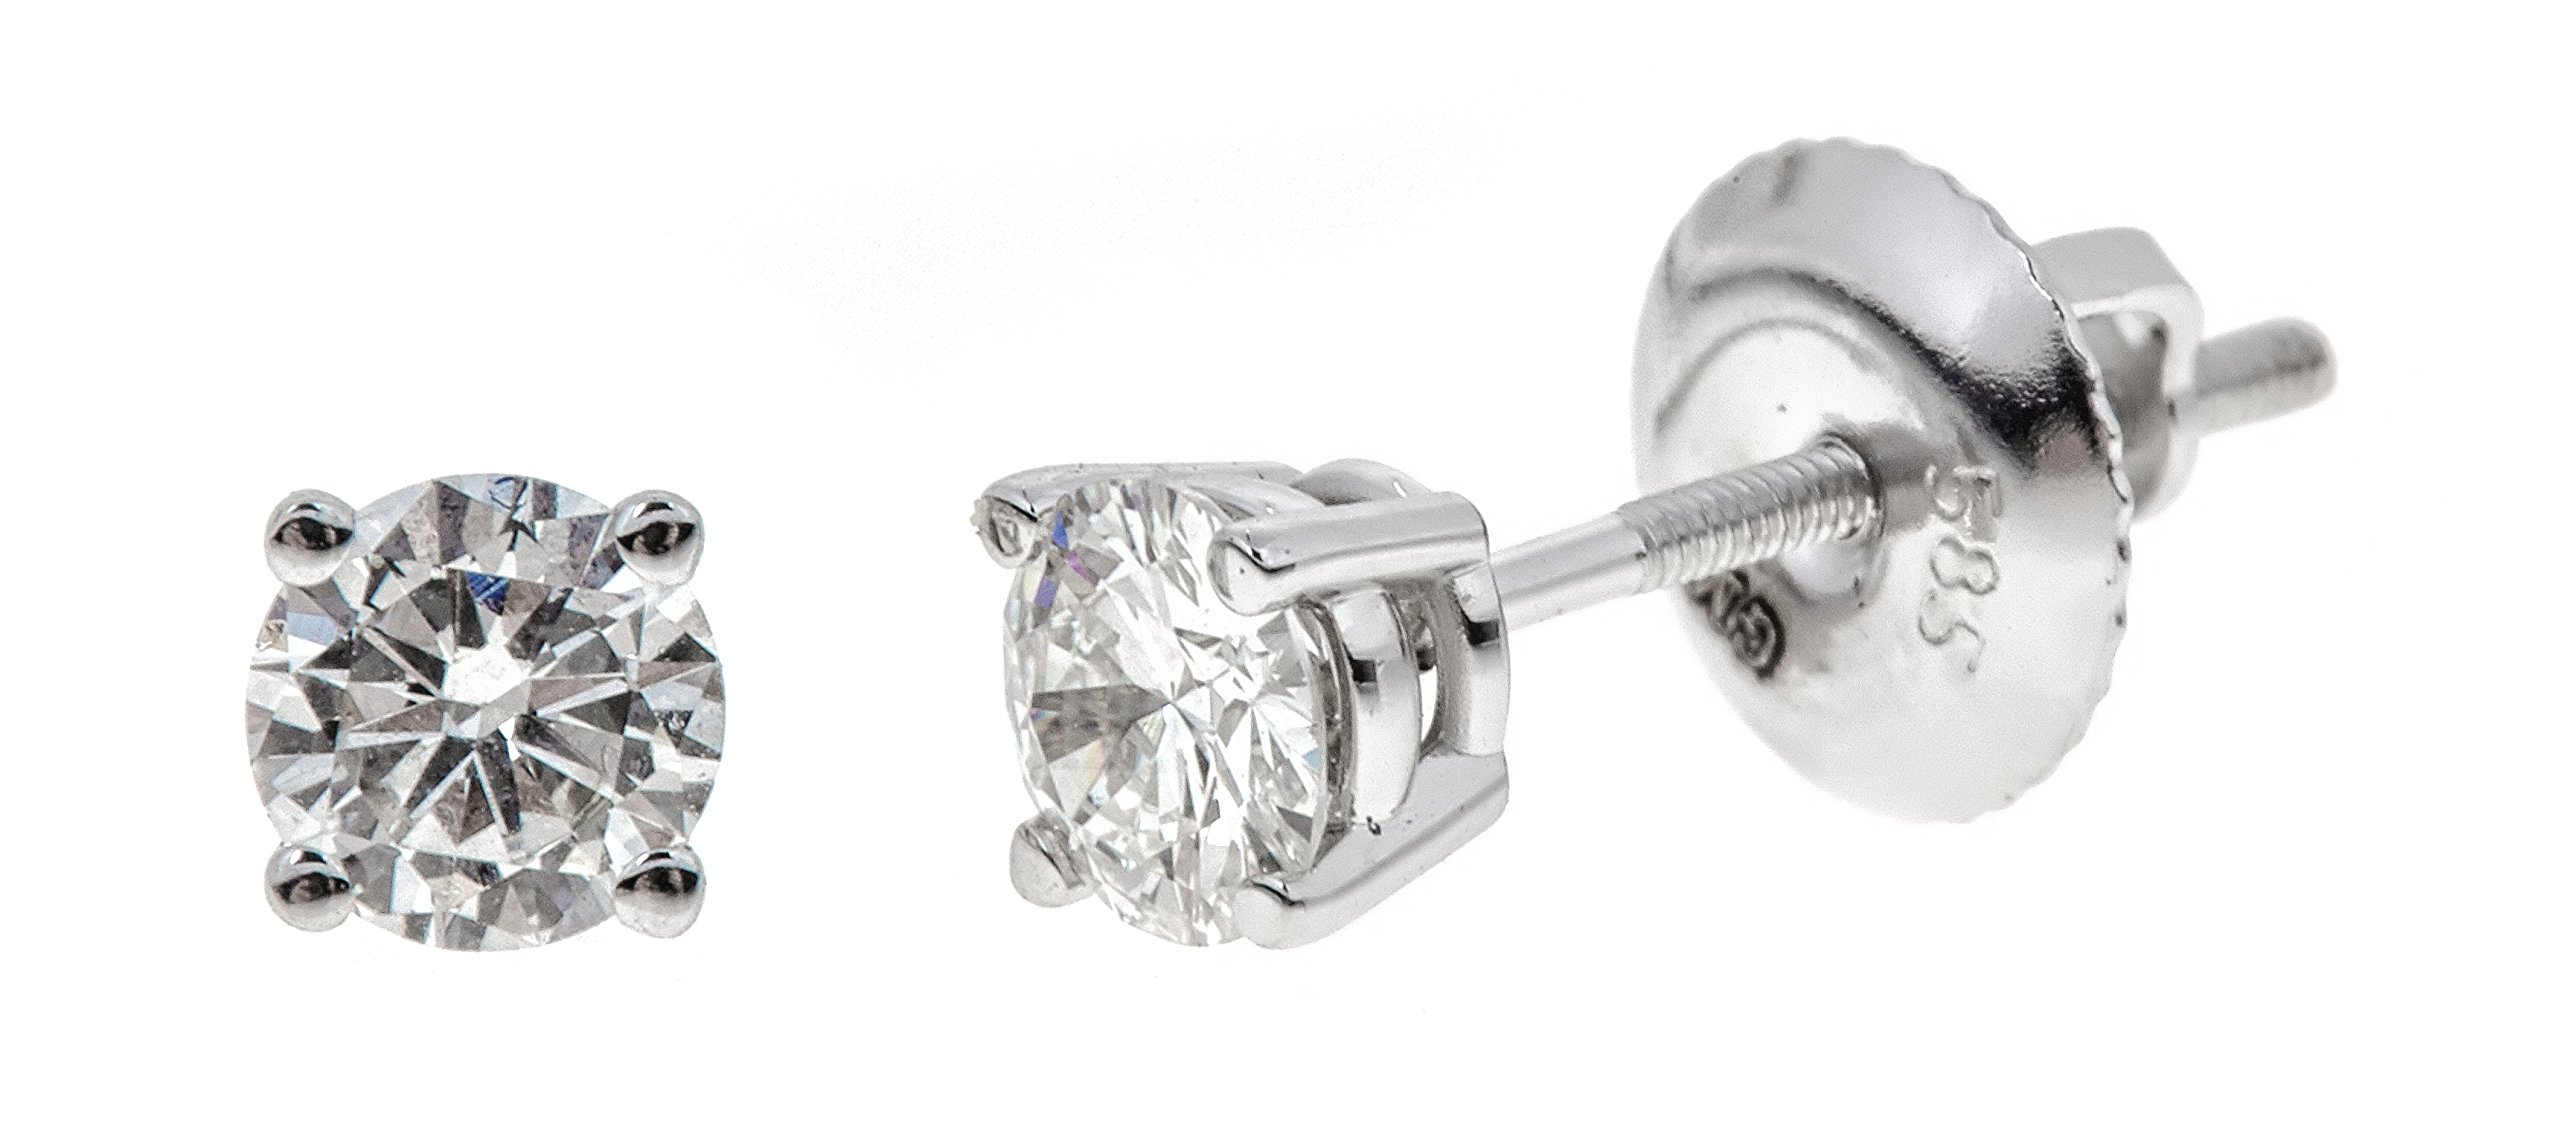 14k White Gold Round-Cut Diamond Stud Earrings (1/2cttw, K-L Color, I2 Clarity)